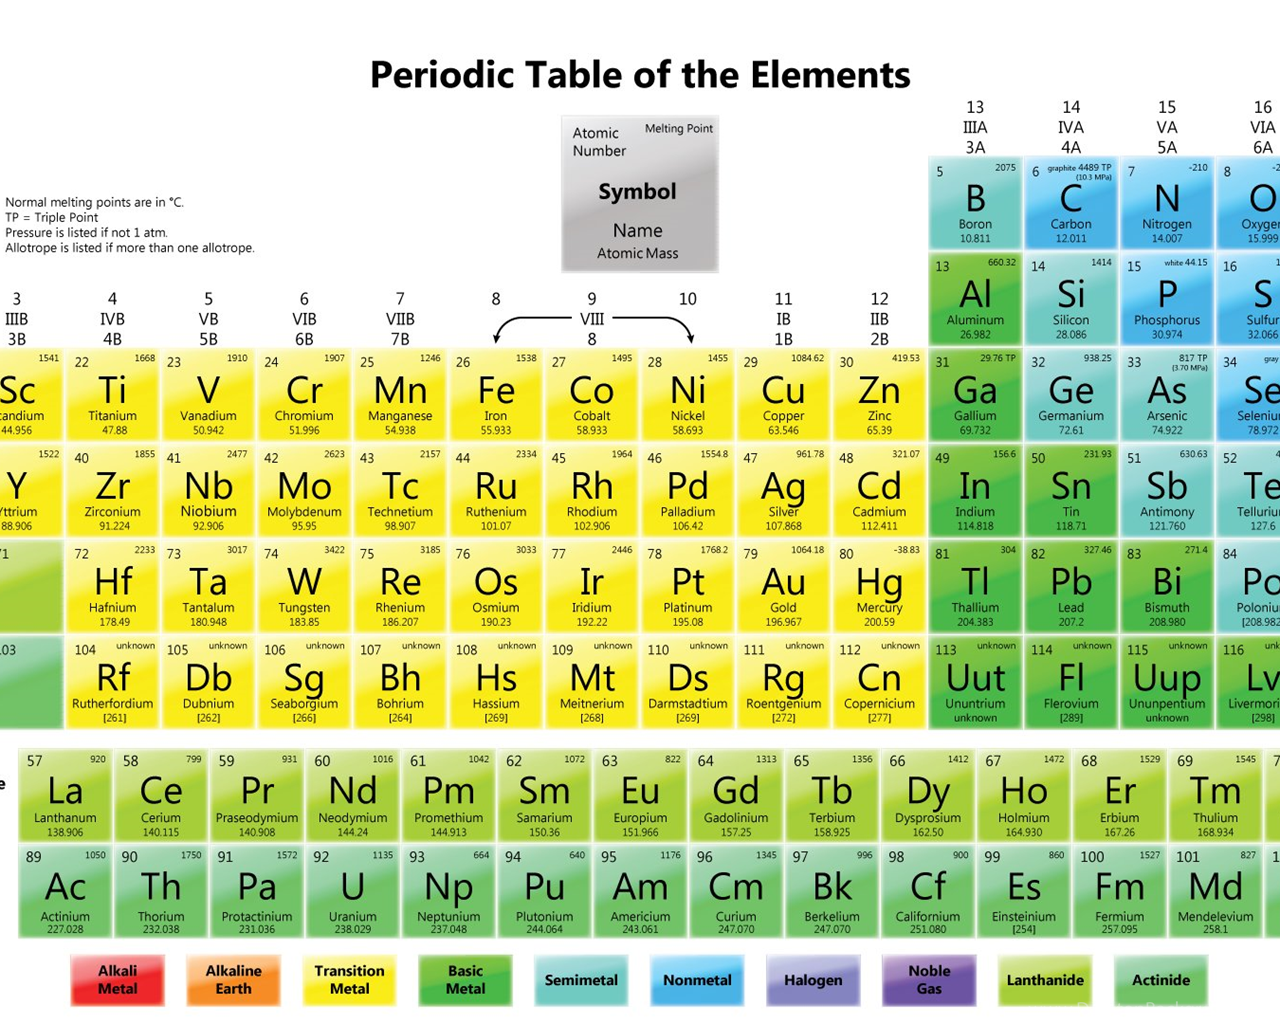 K12 periodic table android apps toilet flush mechanism types periodic table melting points images periodic table images 468968 periodic table wallpapers element melting points 1920x1080 gamestrikefo Choice Image